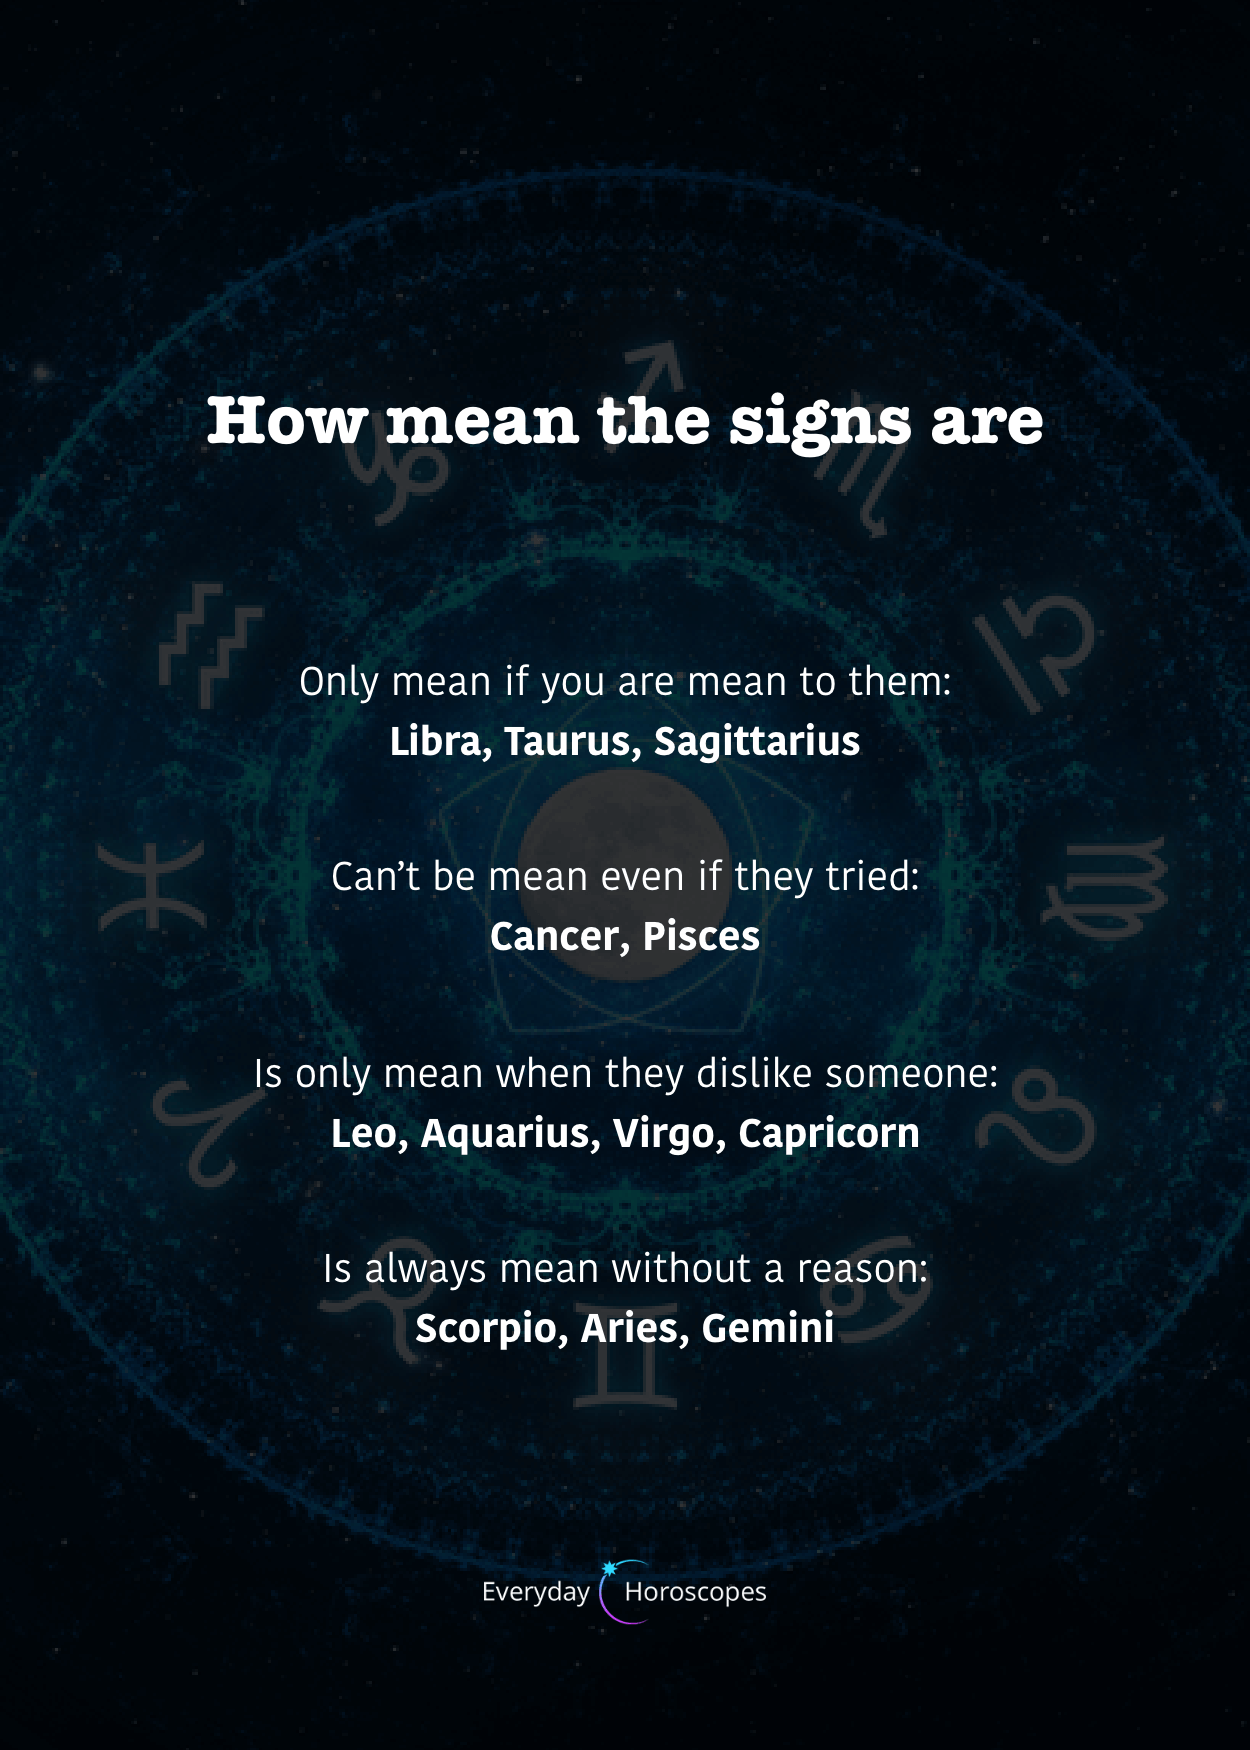 Are you mean? And other bad habits of zodiac signs. #dailyhoroscope #todayhoroscope #horoscope #zodiacsigns #meansigns